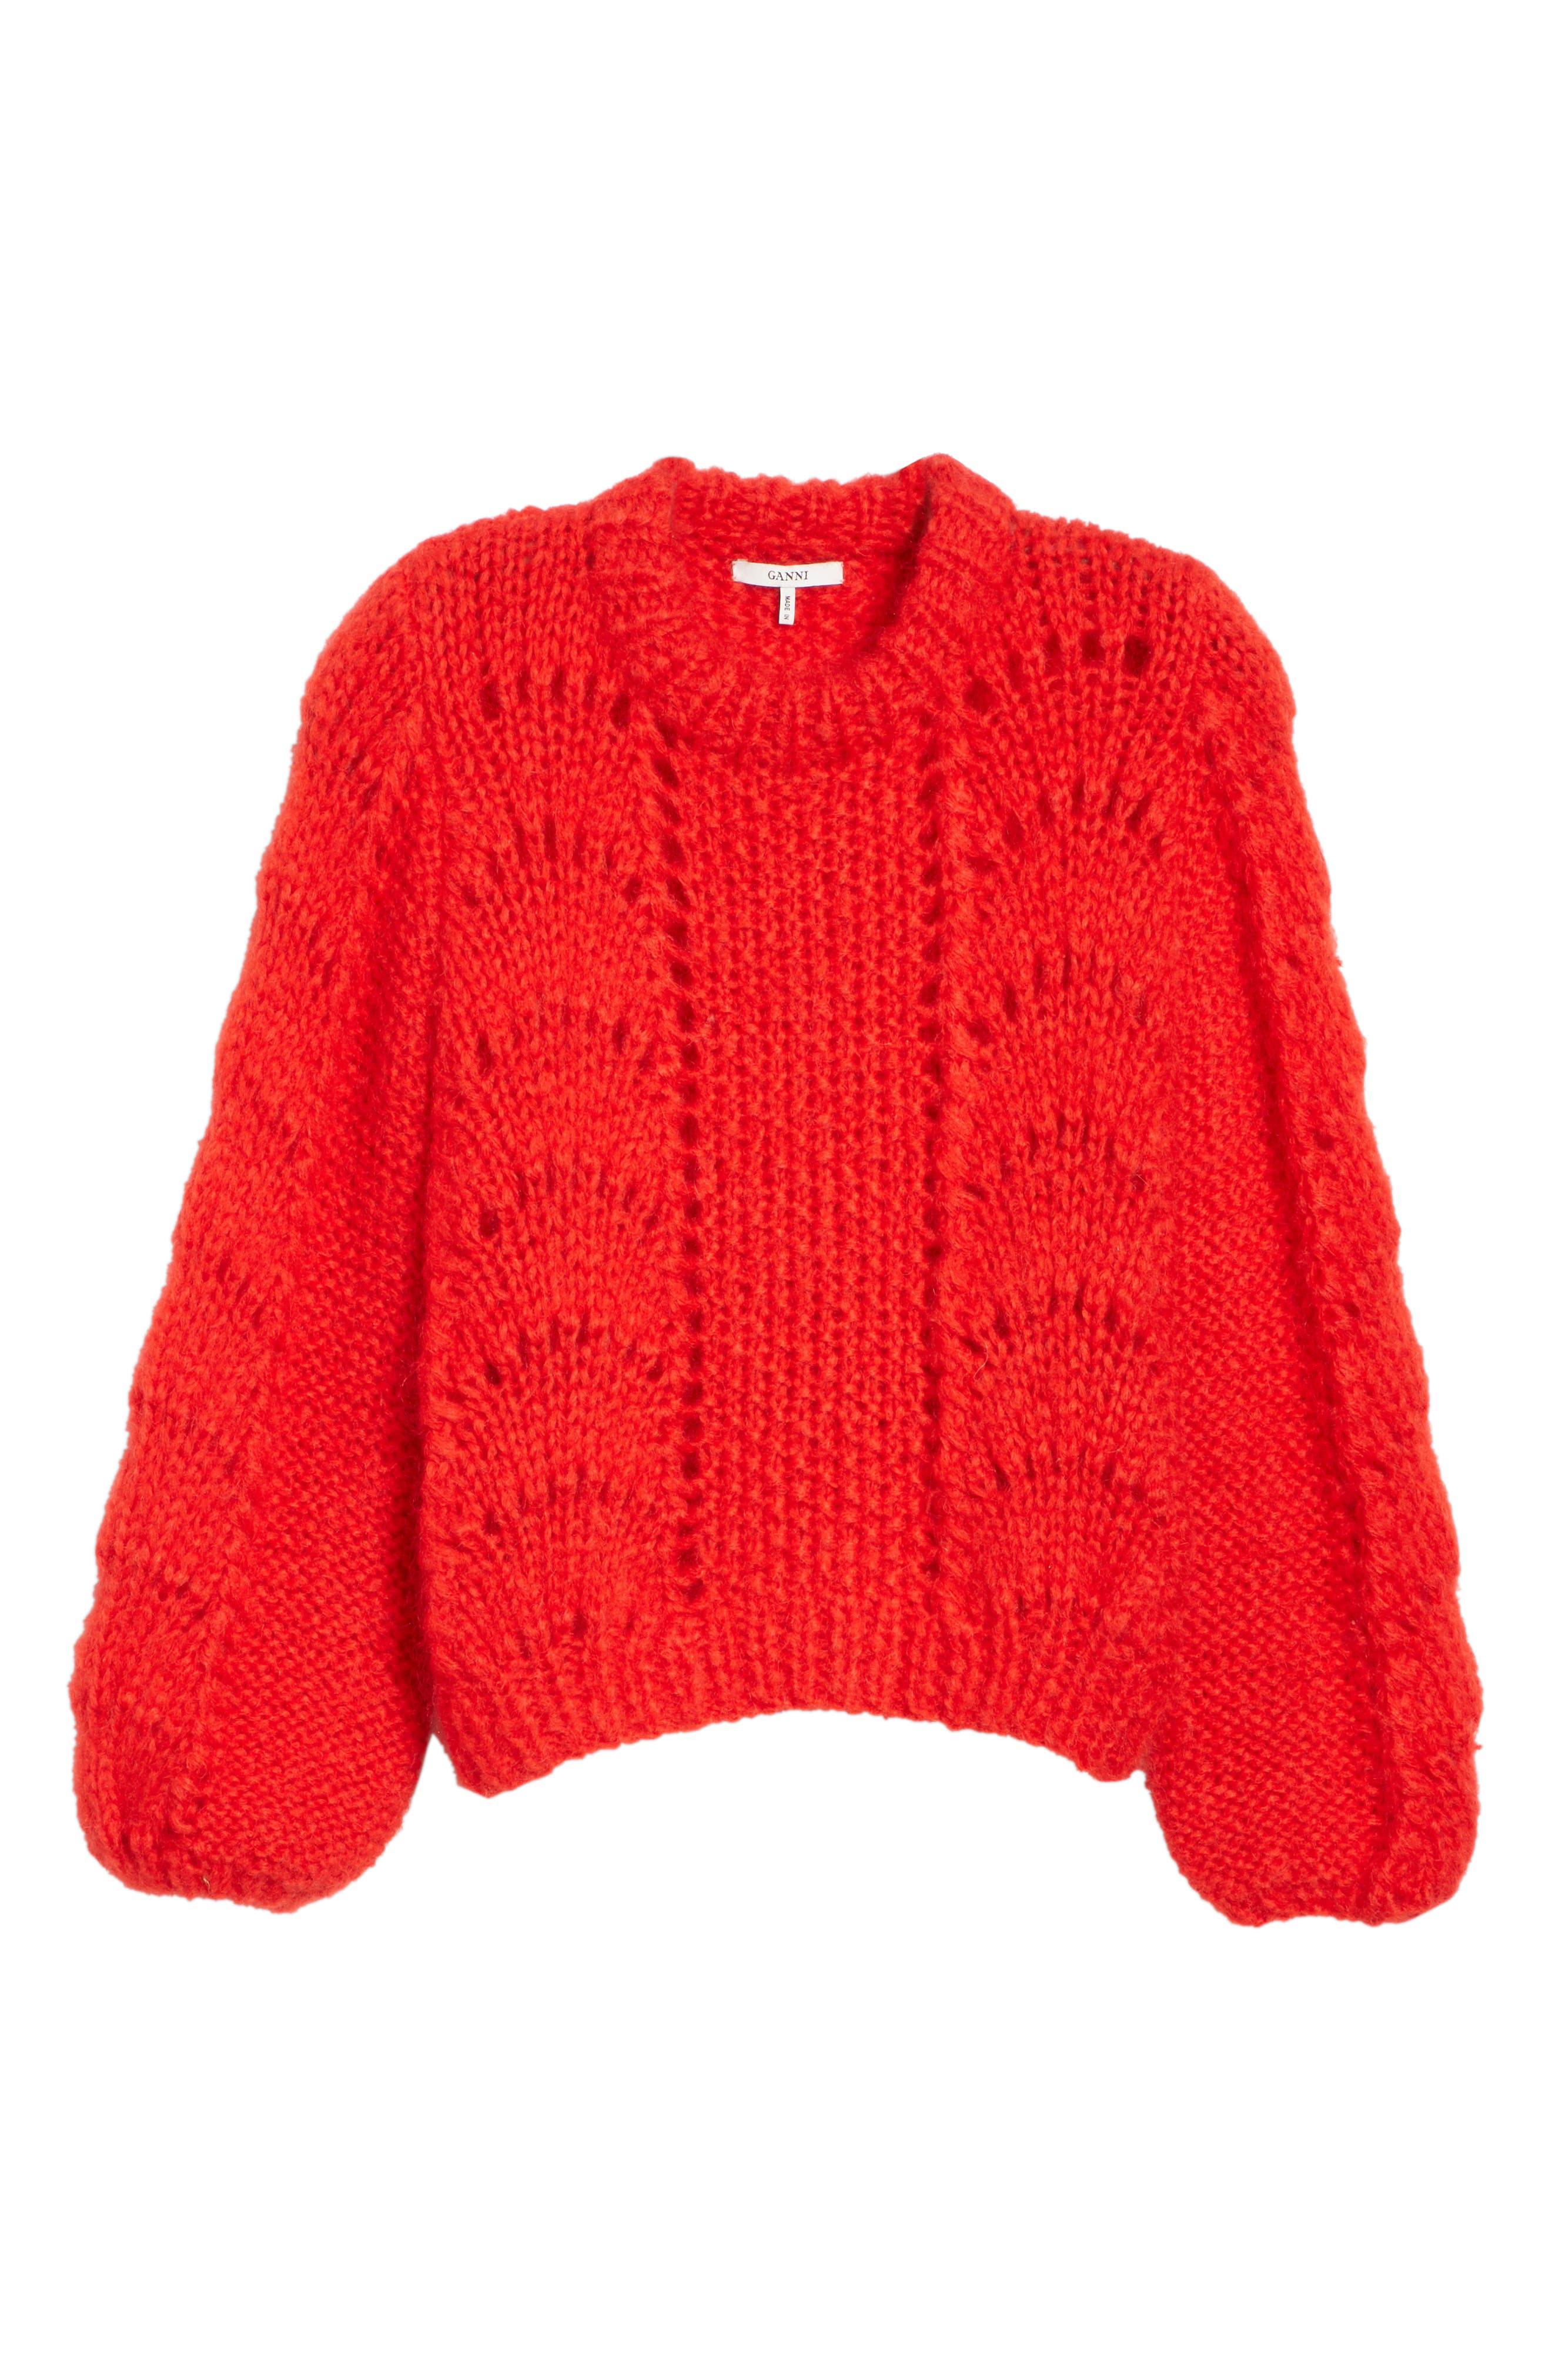 GANNI,                             Mohair & Wool Sweater,                             Alternate thumbnail 6, color,                             FIERY RED 403